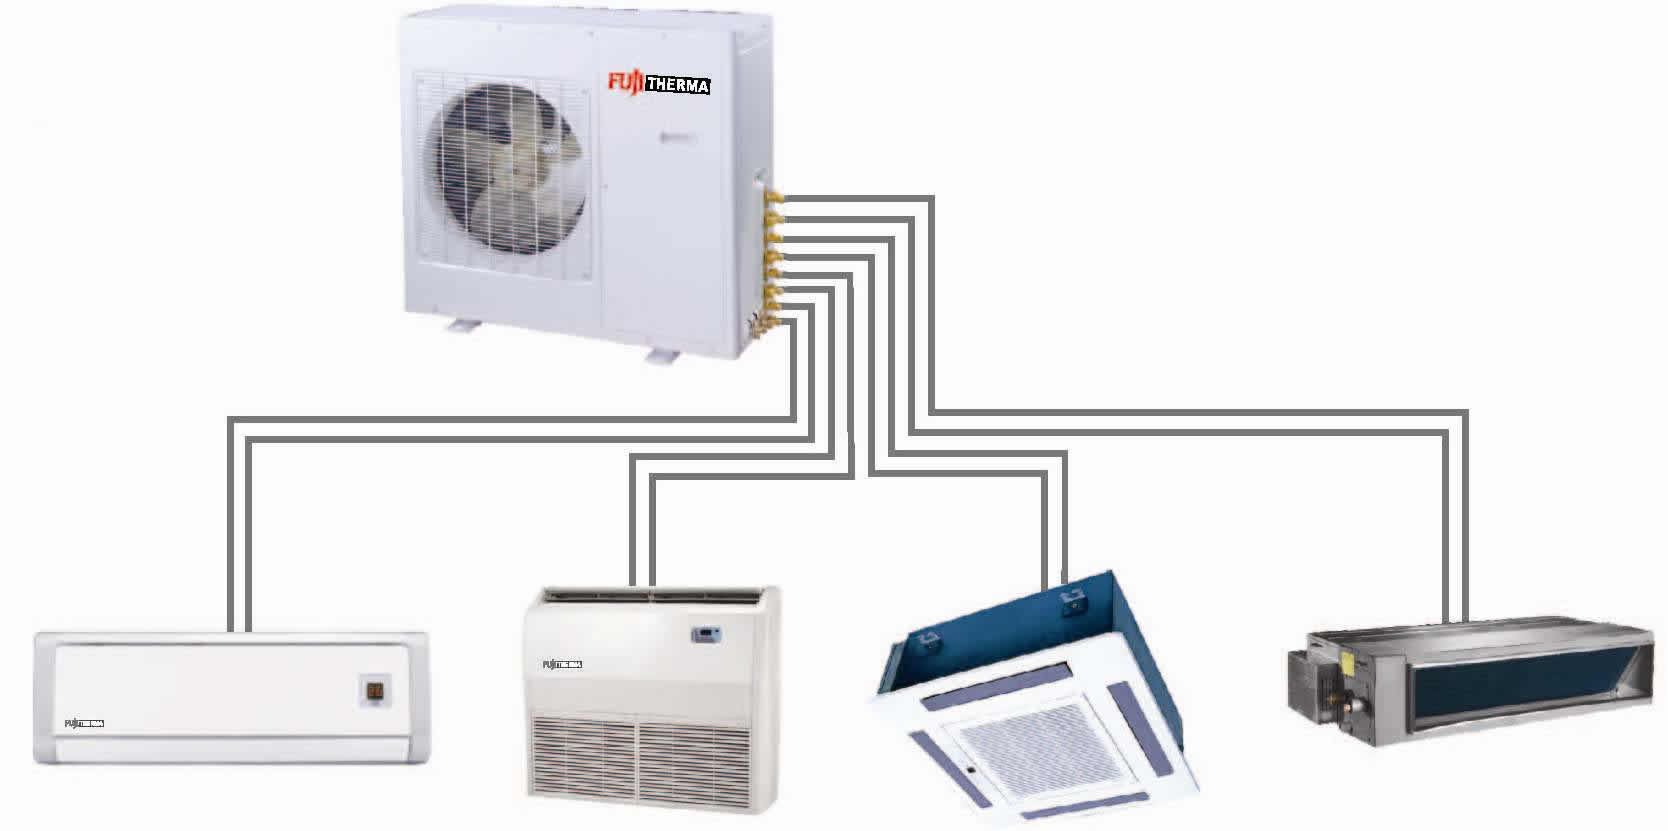 multiinverter1